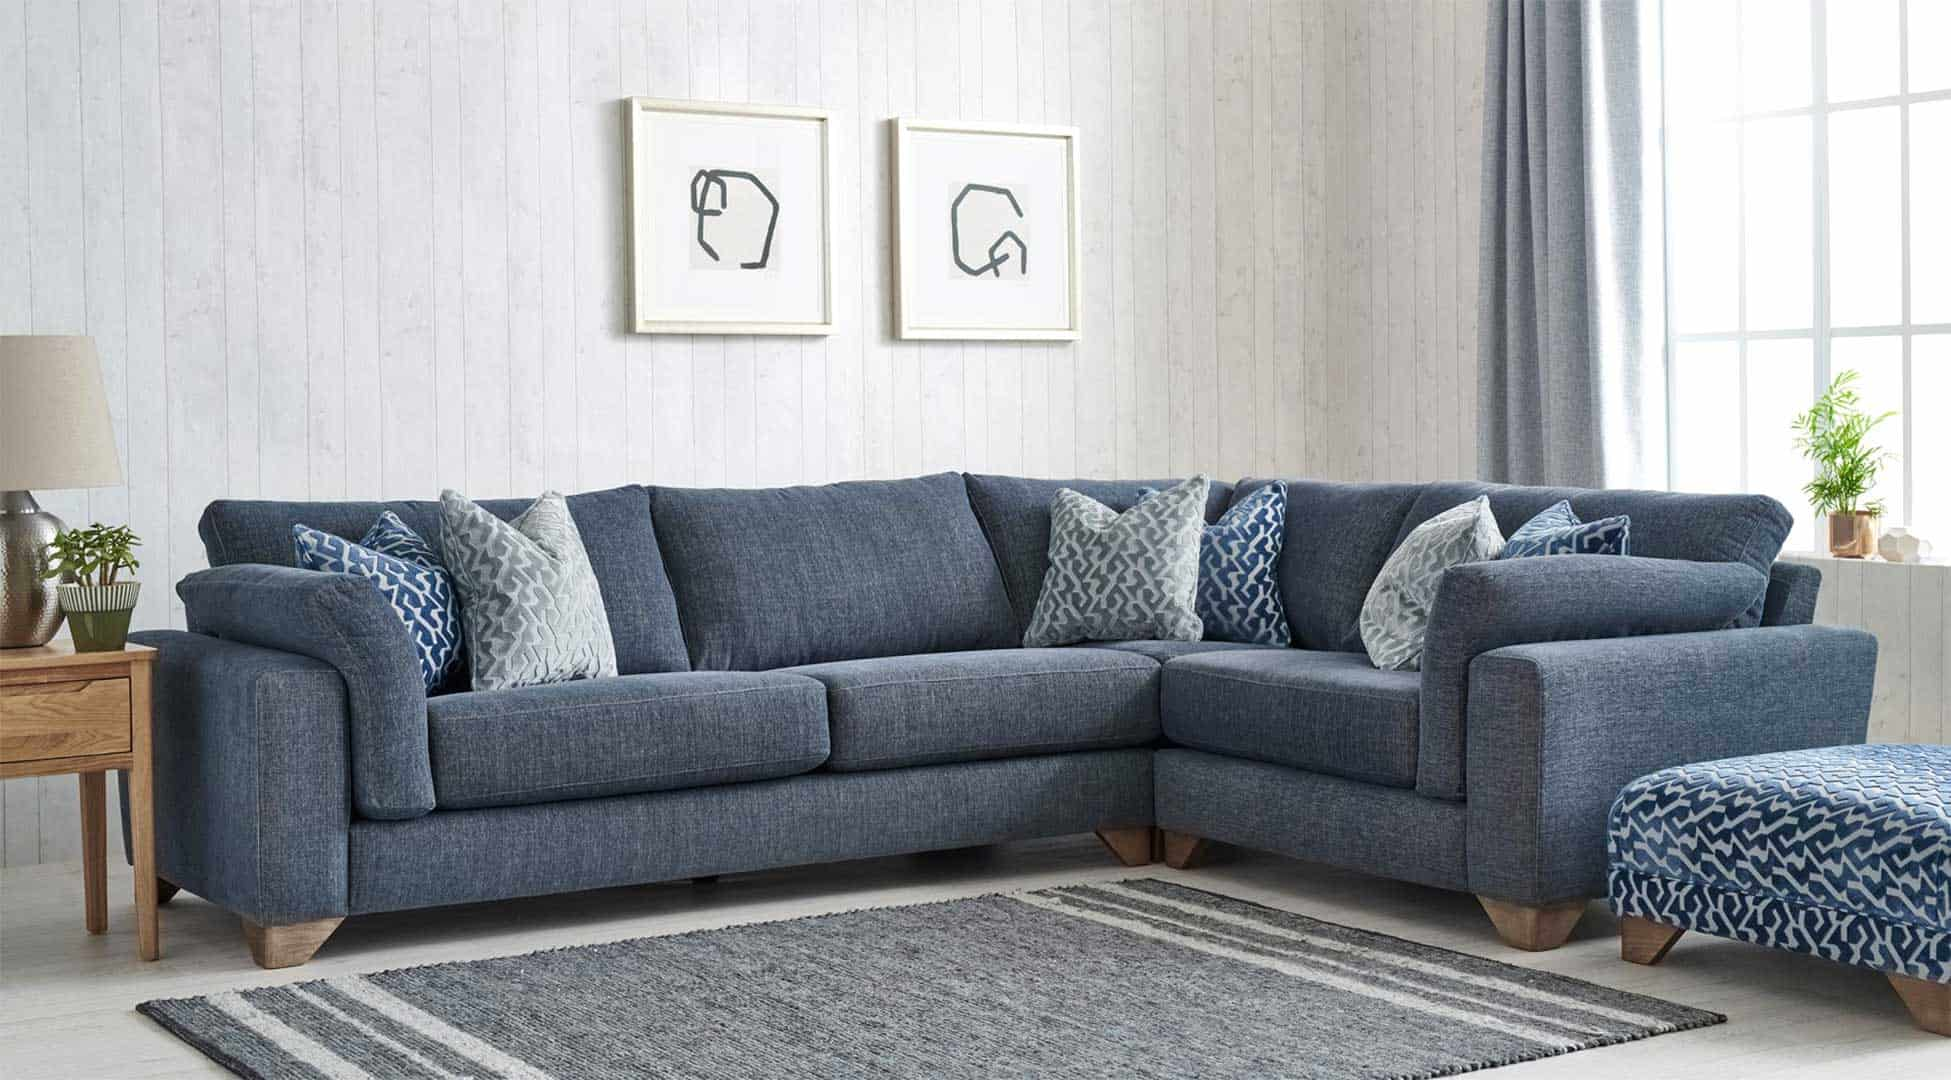 A sumptuous sofa range, with deep lounging insatiable comfort.